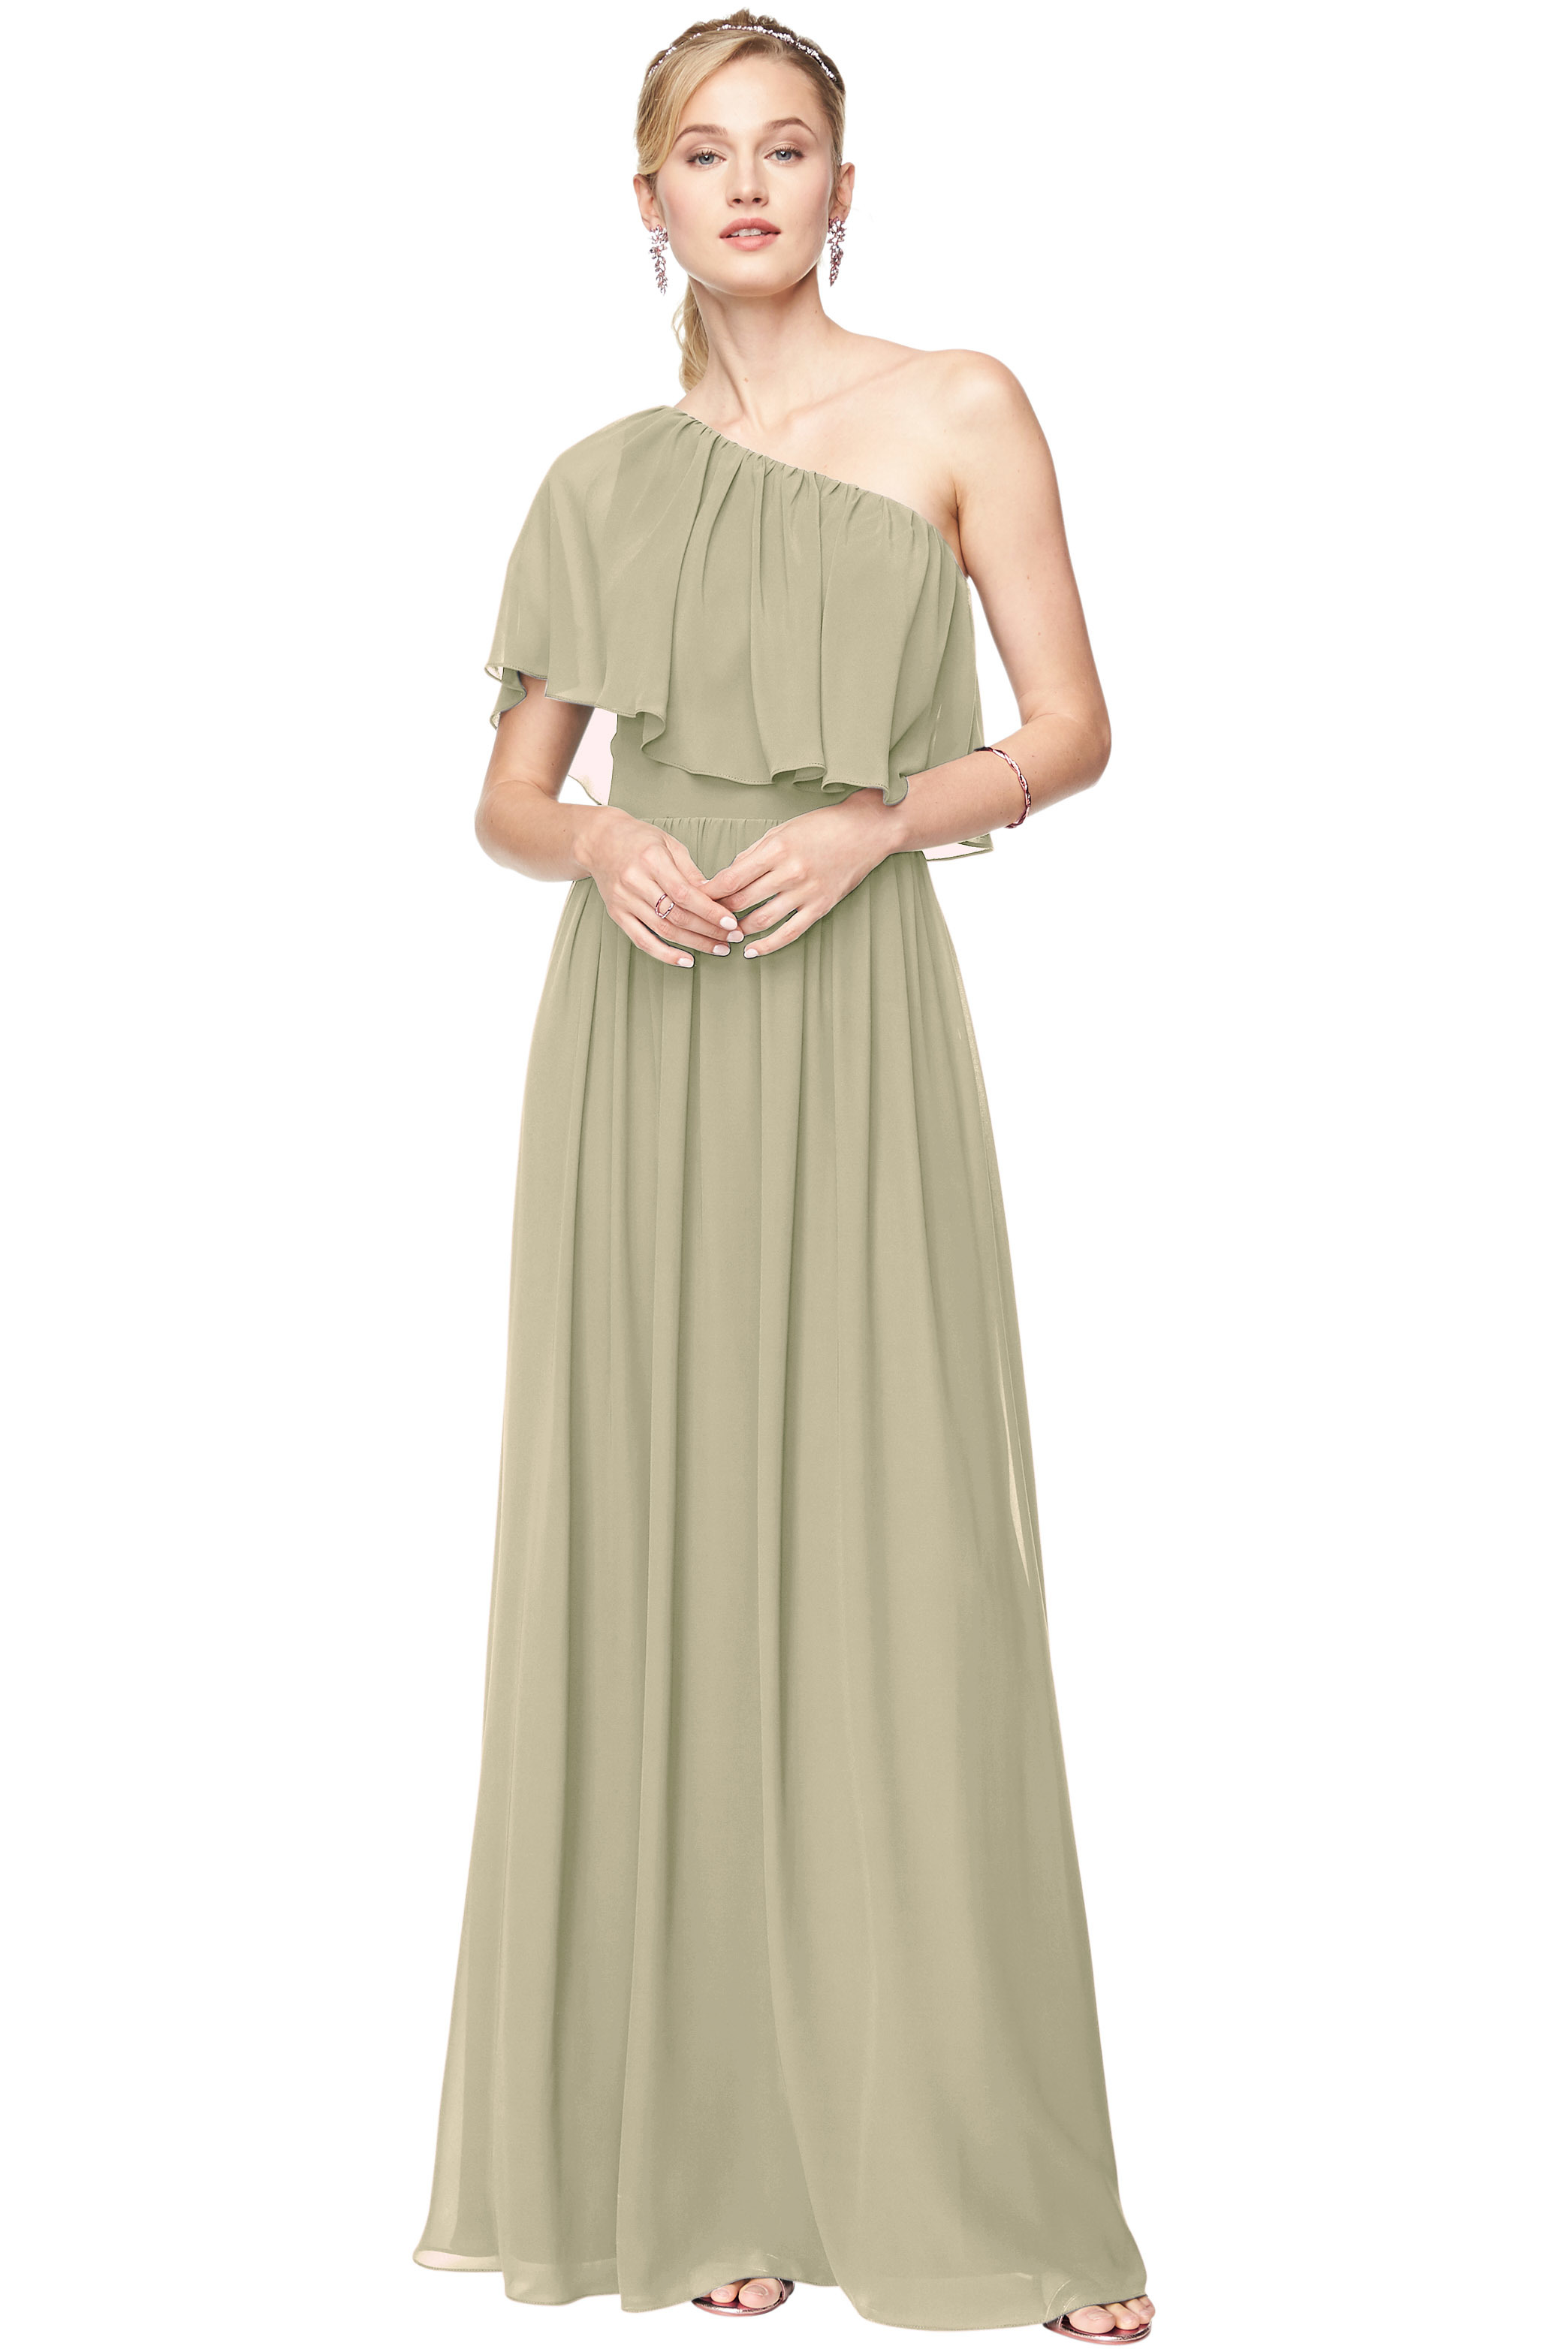 Bill Levkoff PISTACHIO Chiffon One Shoulder A-Line gown, $184.00 Front